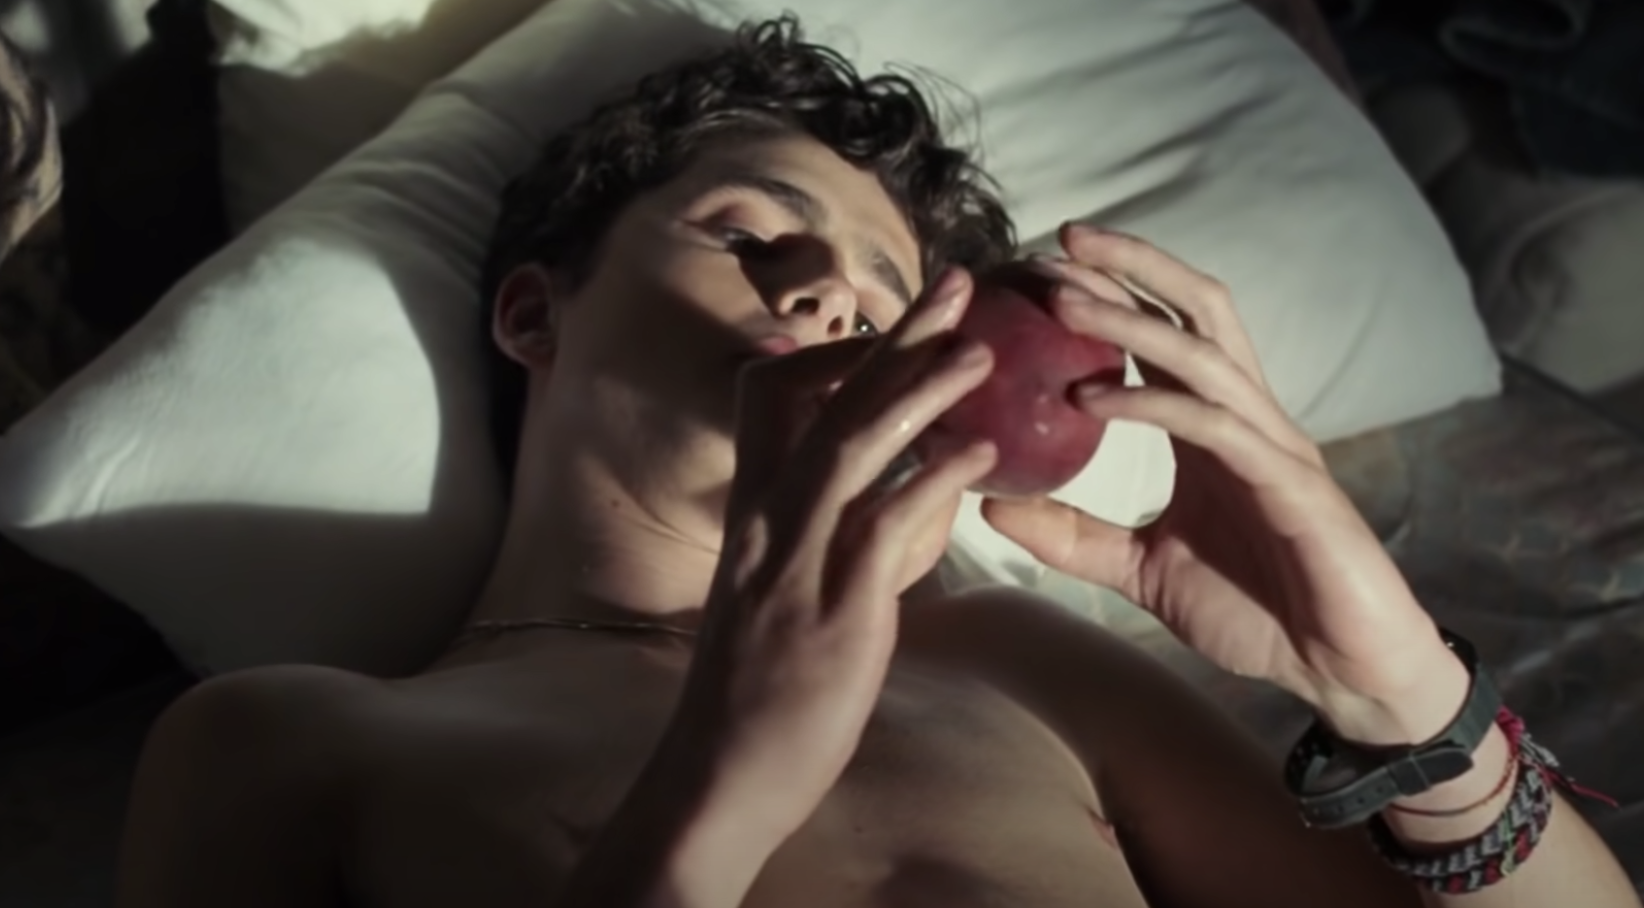 """Timothée Chalamet staring at a peach in bed in """"Call Me by Your Name"""""""